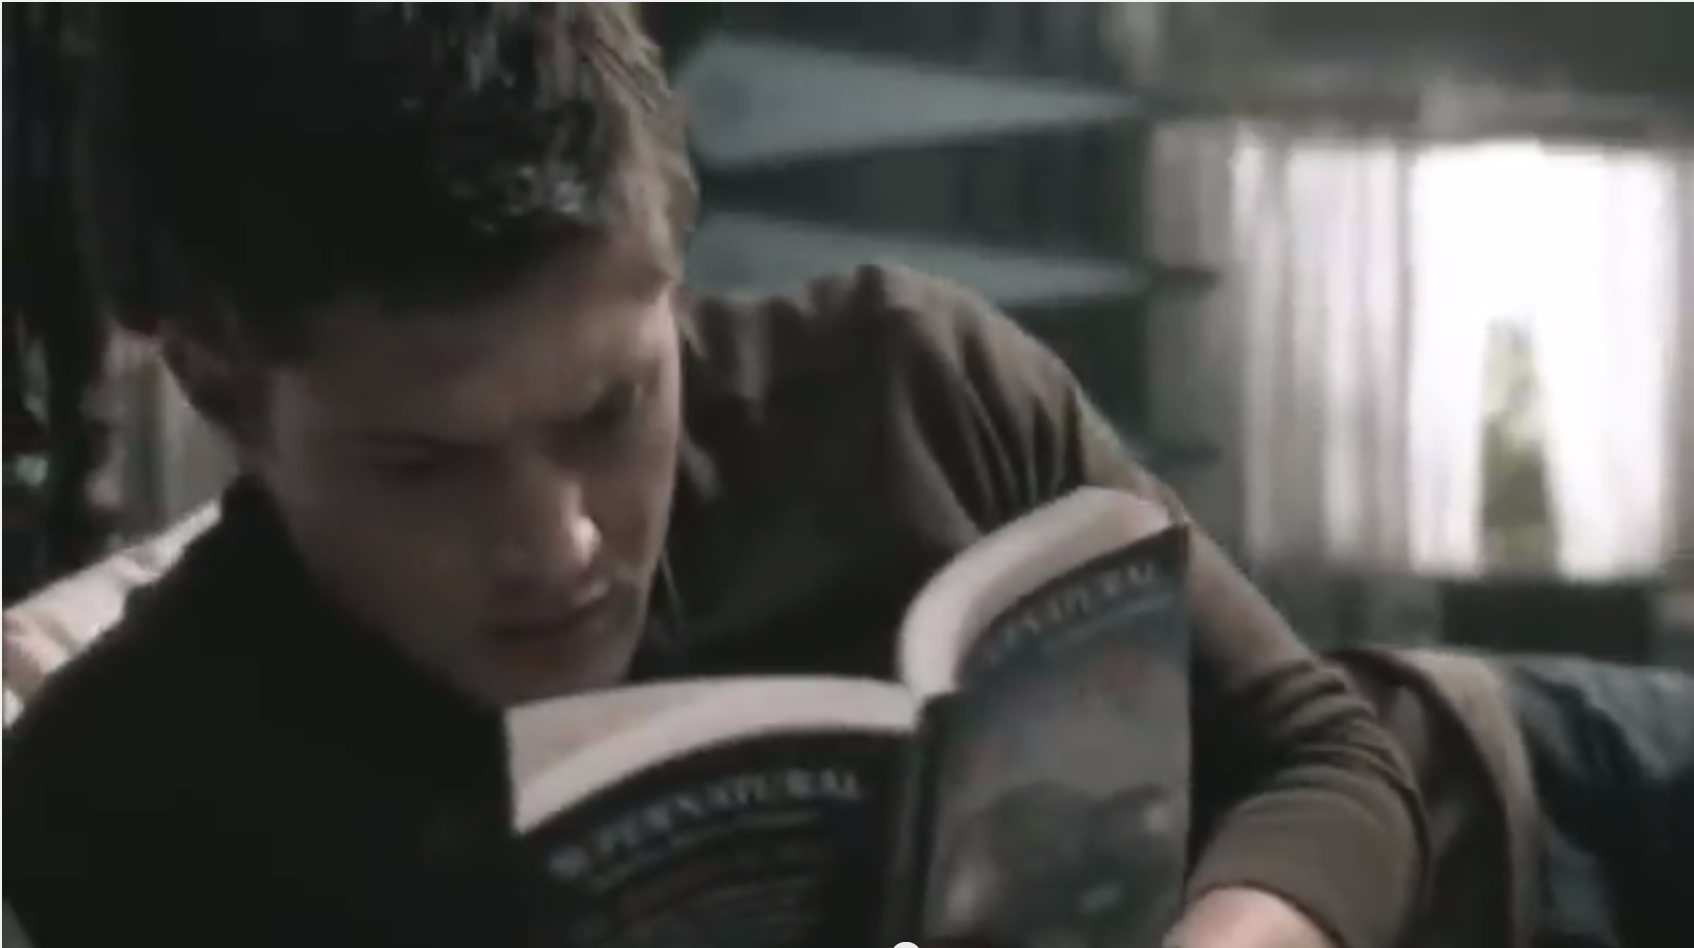 Dean reads Supernatural books by Chuck